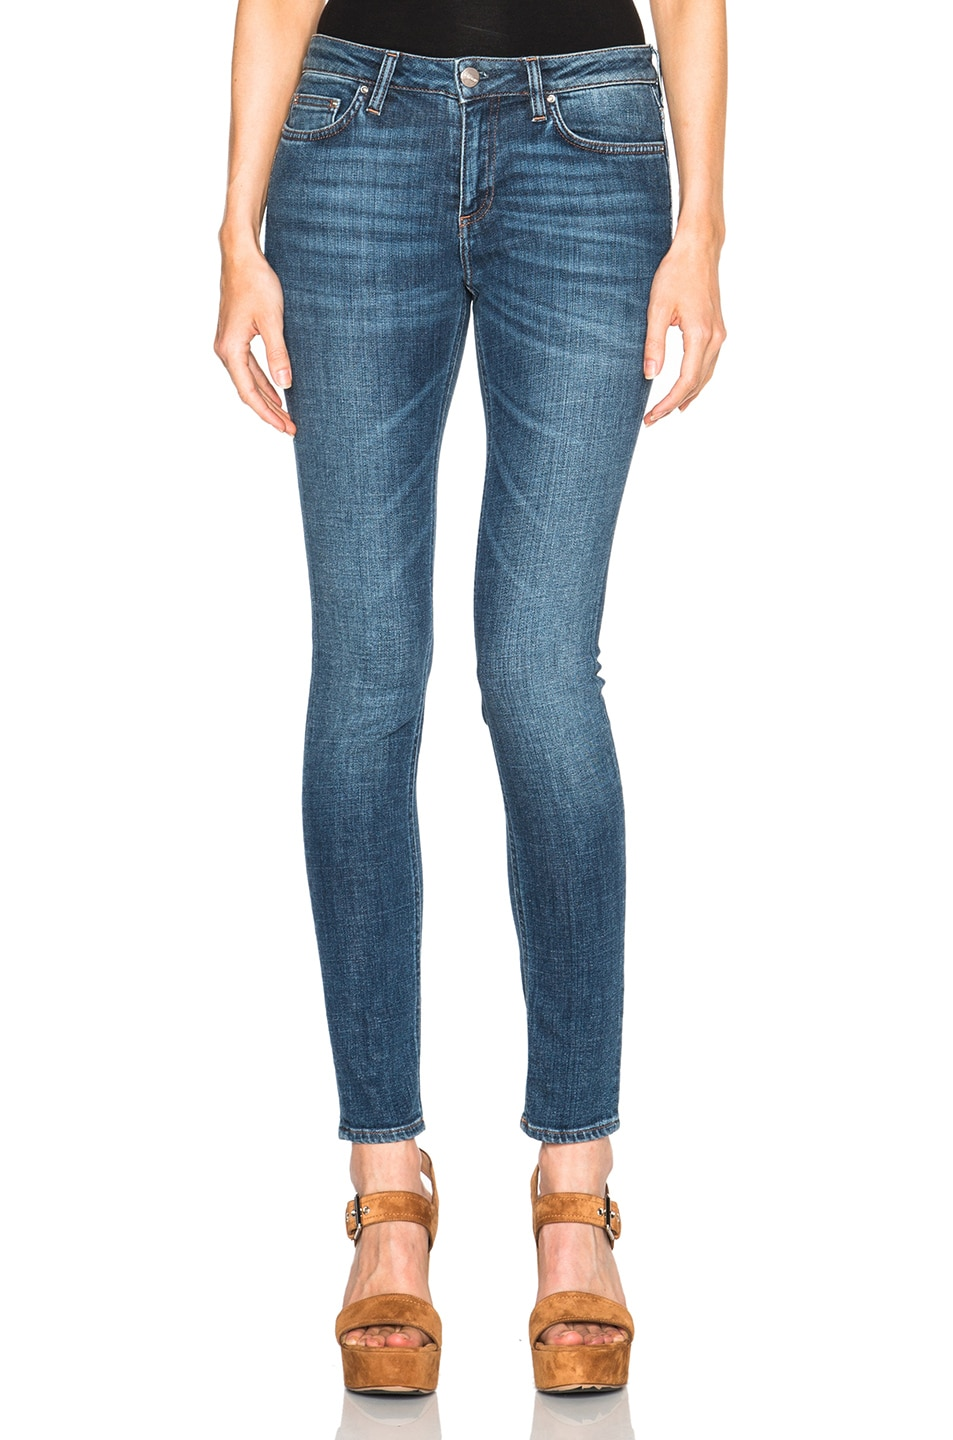 Toteme skinny jeans Big Sale Clearance Store Cheap Online Cheapest Price Online Really Cheap Price Cheap Sale With Mastercard Sf9KngMF